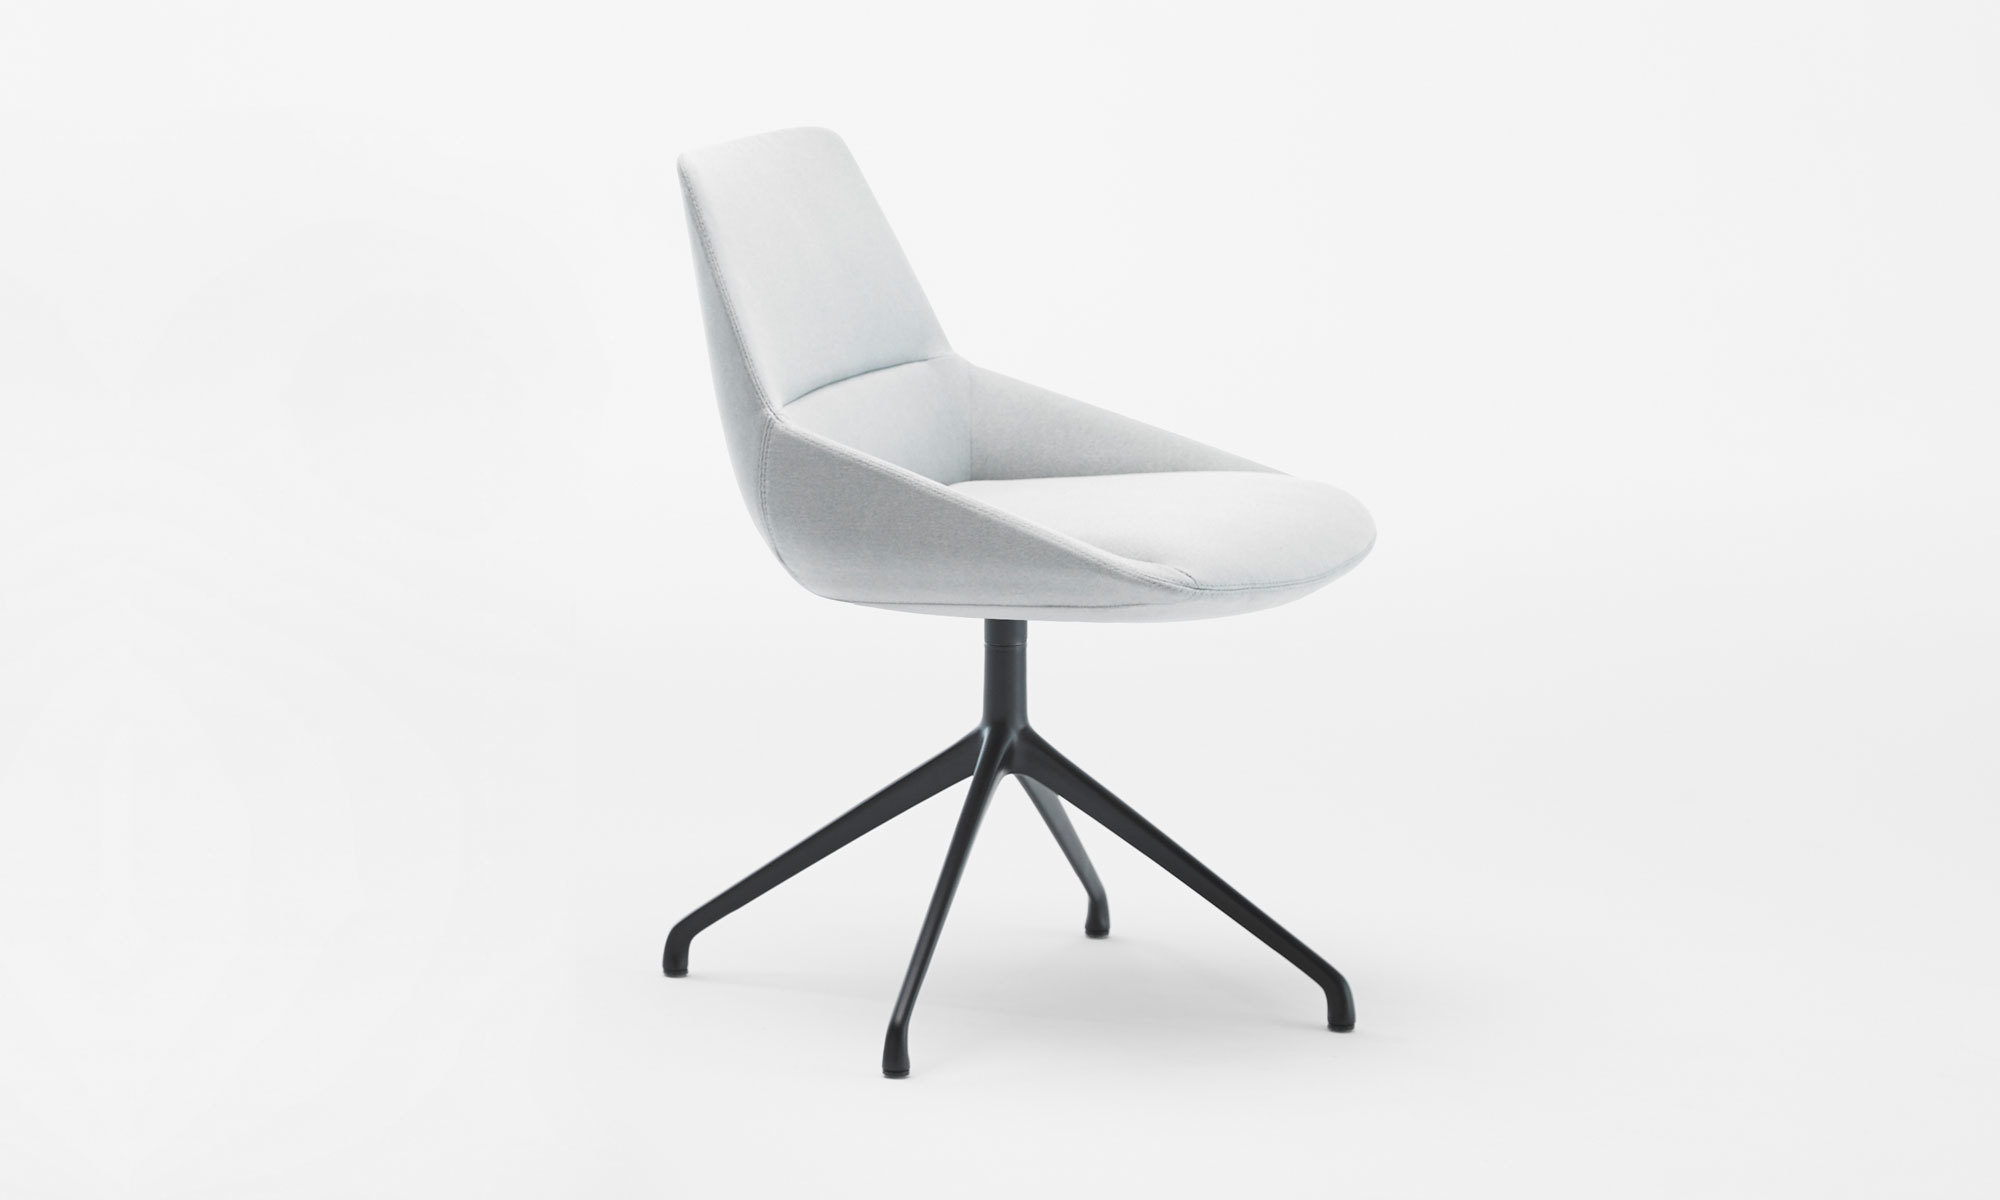 Dunas Xs 4 Star Aluminium Chair By Christophe Pillet For